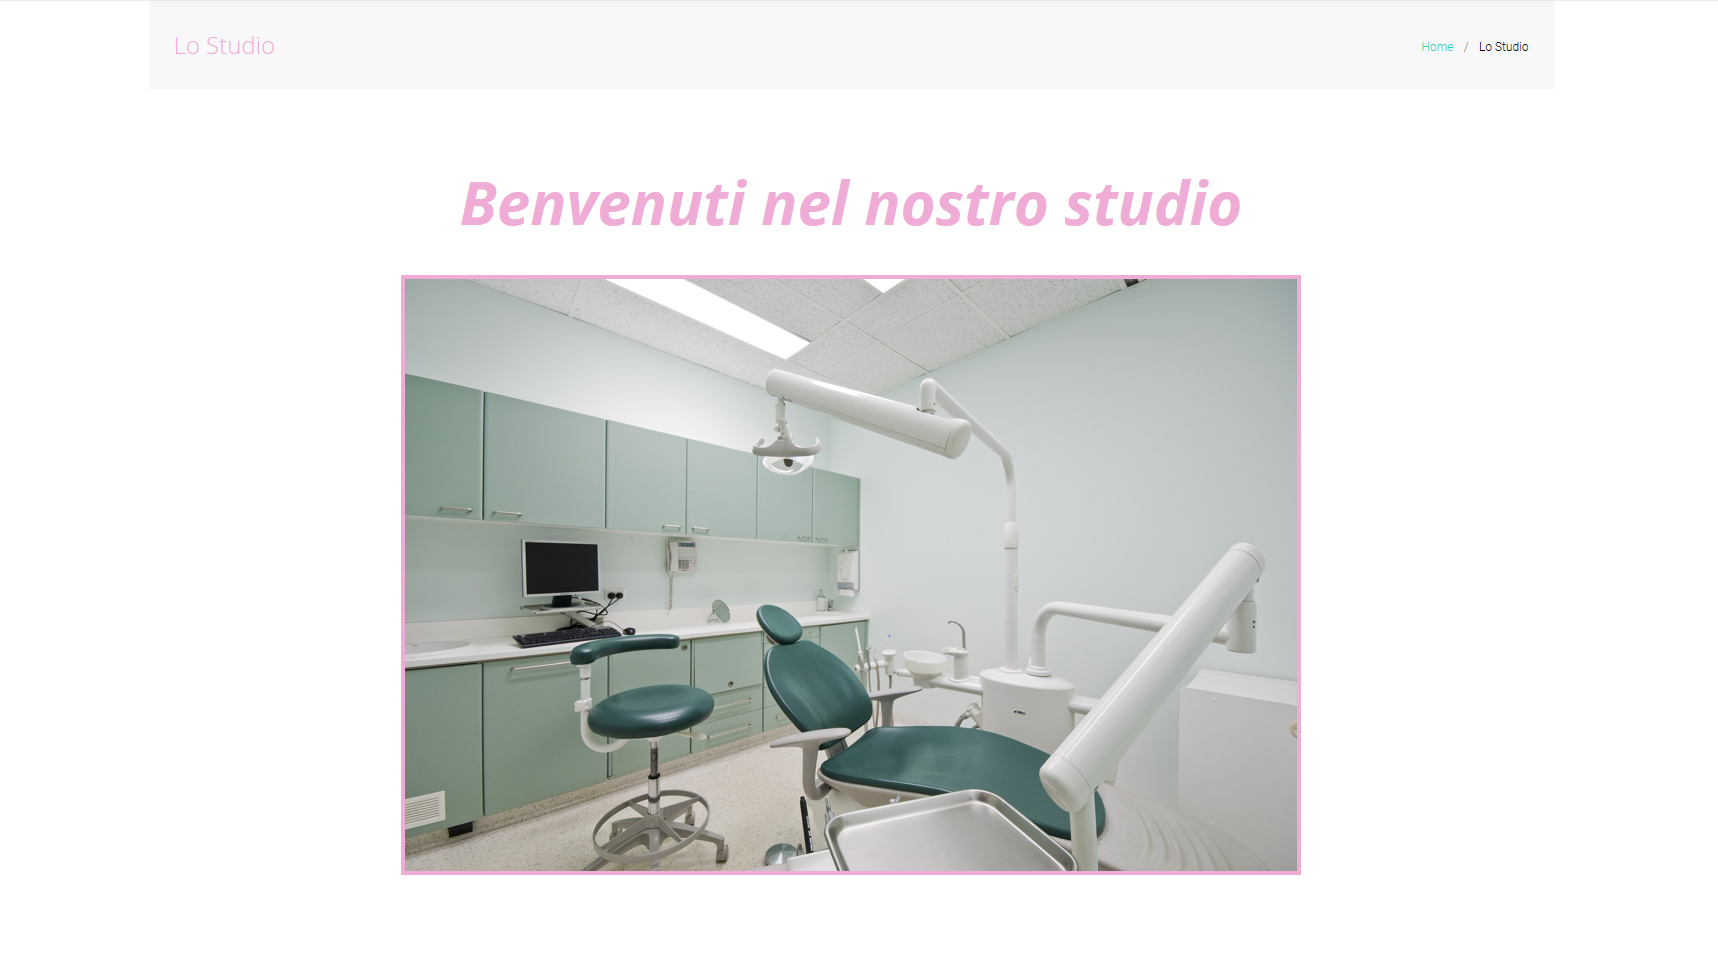 Schermata Dental Theme #01